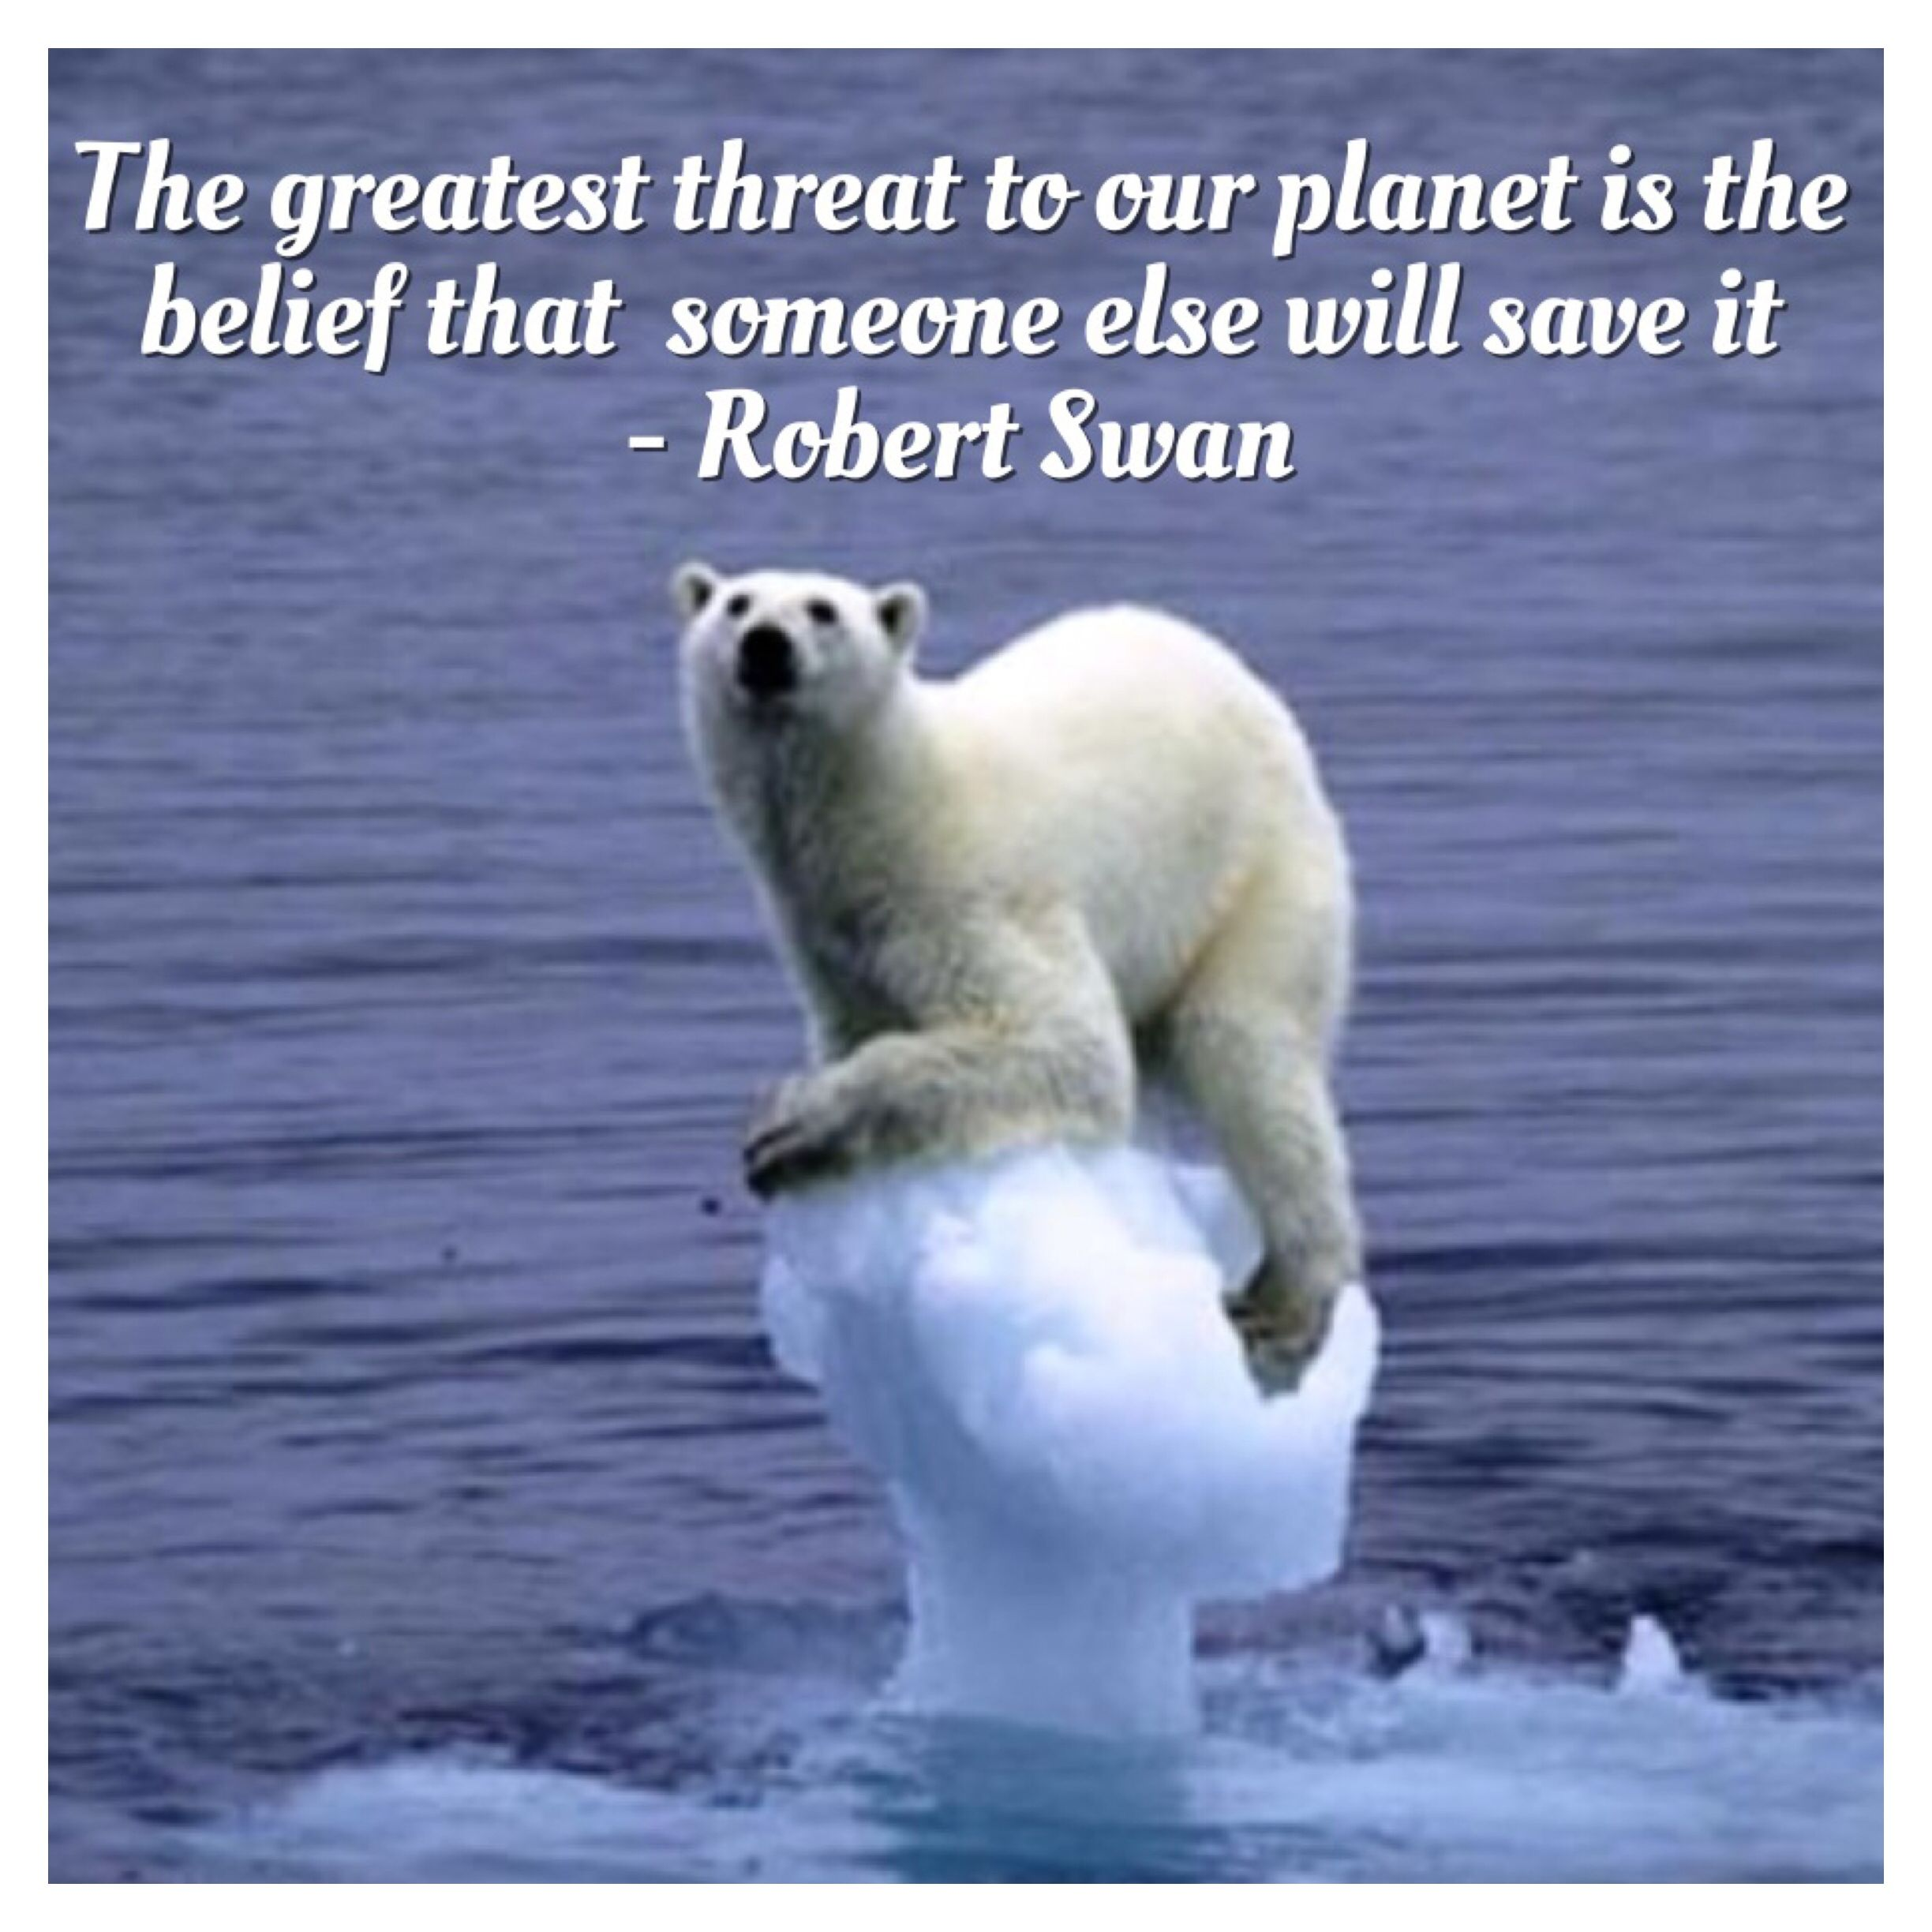 Global Warming Quotes The Greatest Threat To Our Planet Is The Belief That Someone Else